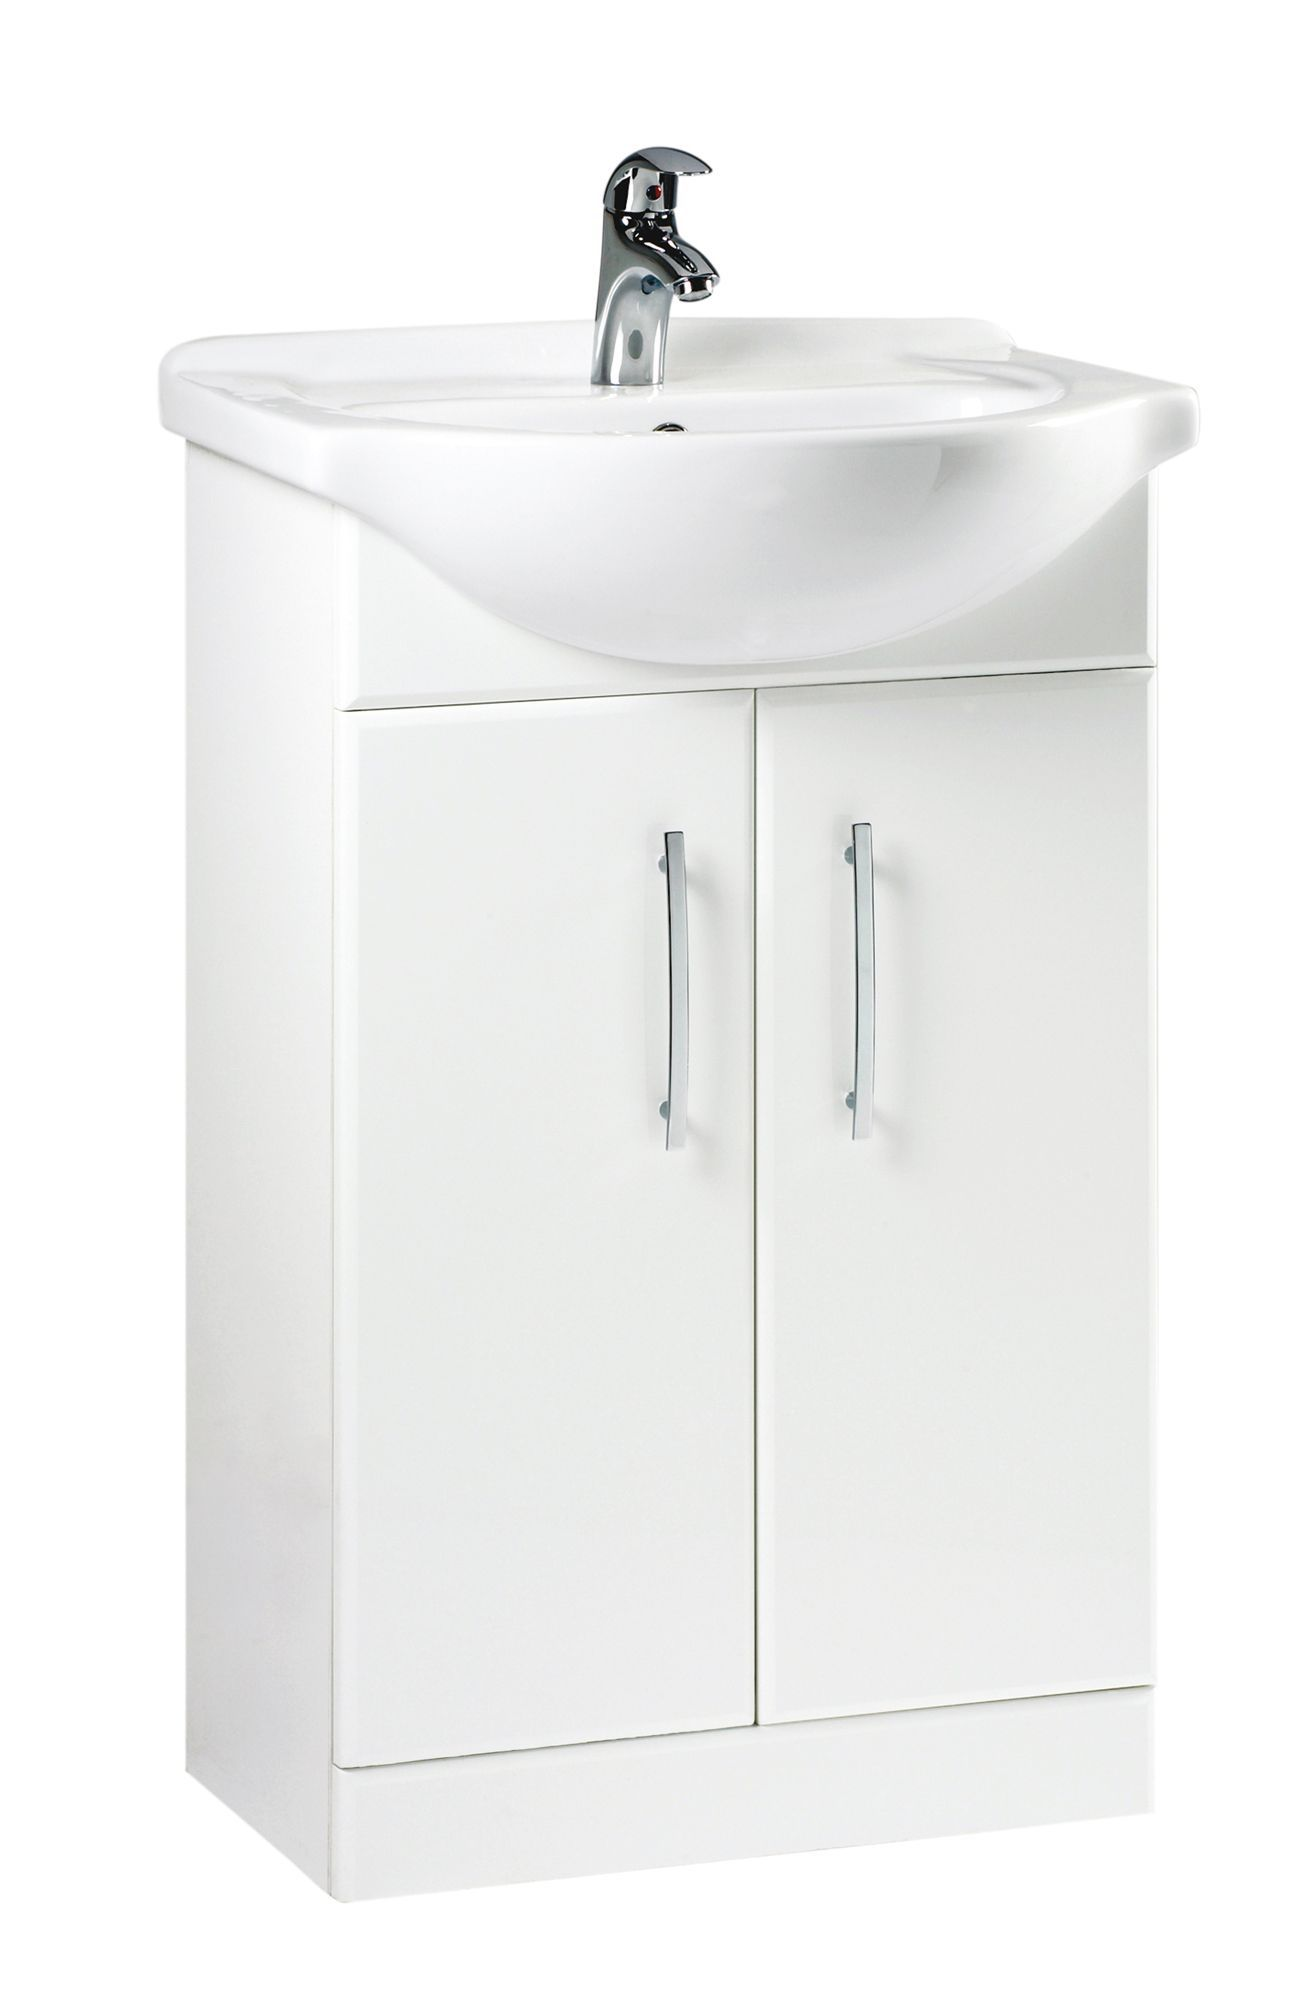 B Amp Q White Vanity Unit Amp Basin Departments Diy At B Amp Q